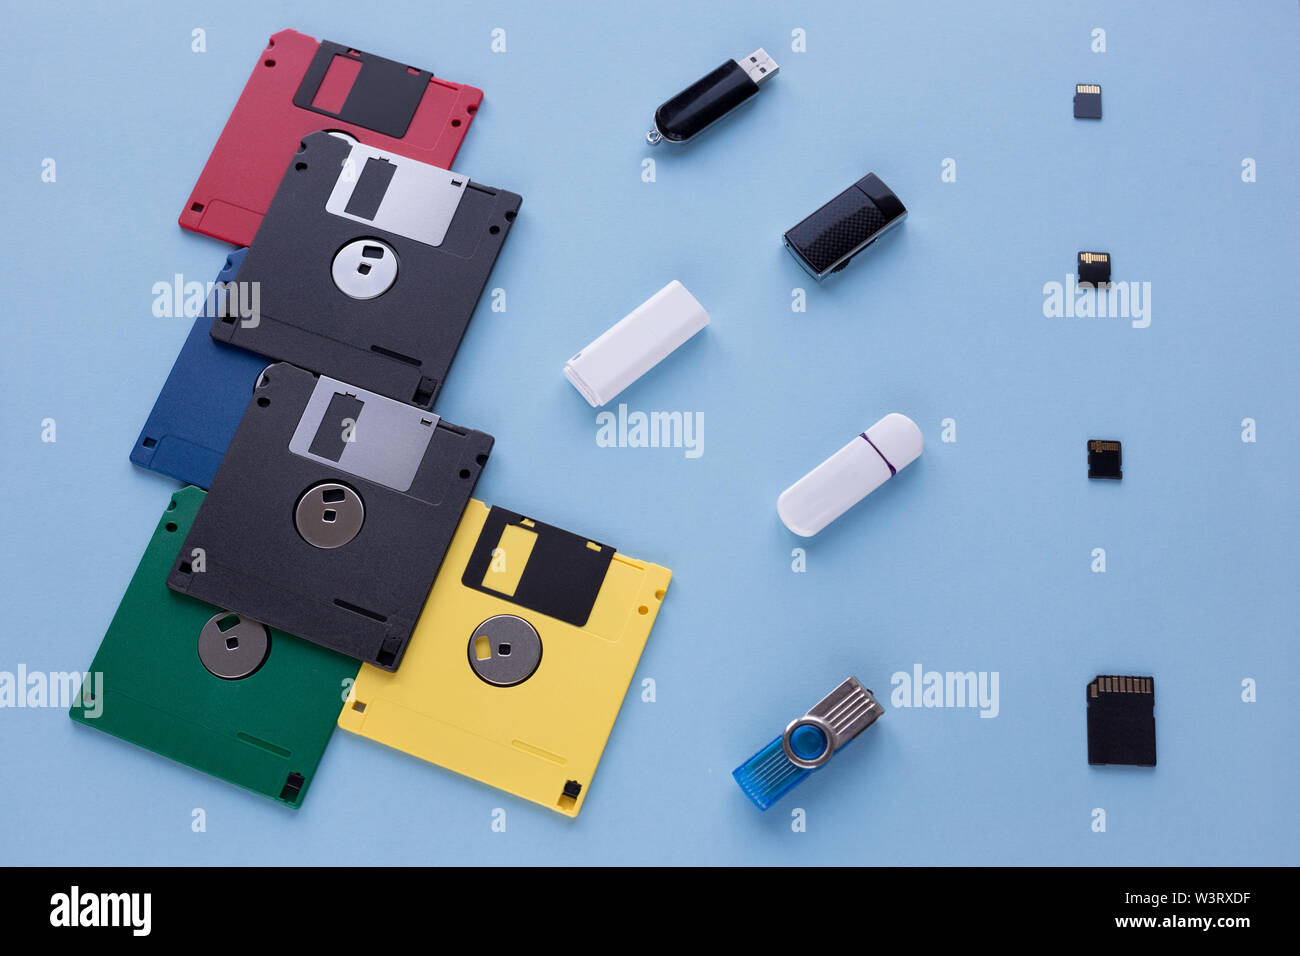 The evolution of digital data storage device. Floppy disks, flash drives and small memory cards. Isolated on a blue background. - Stock Image